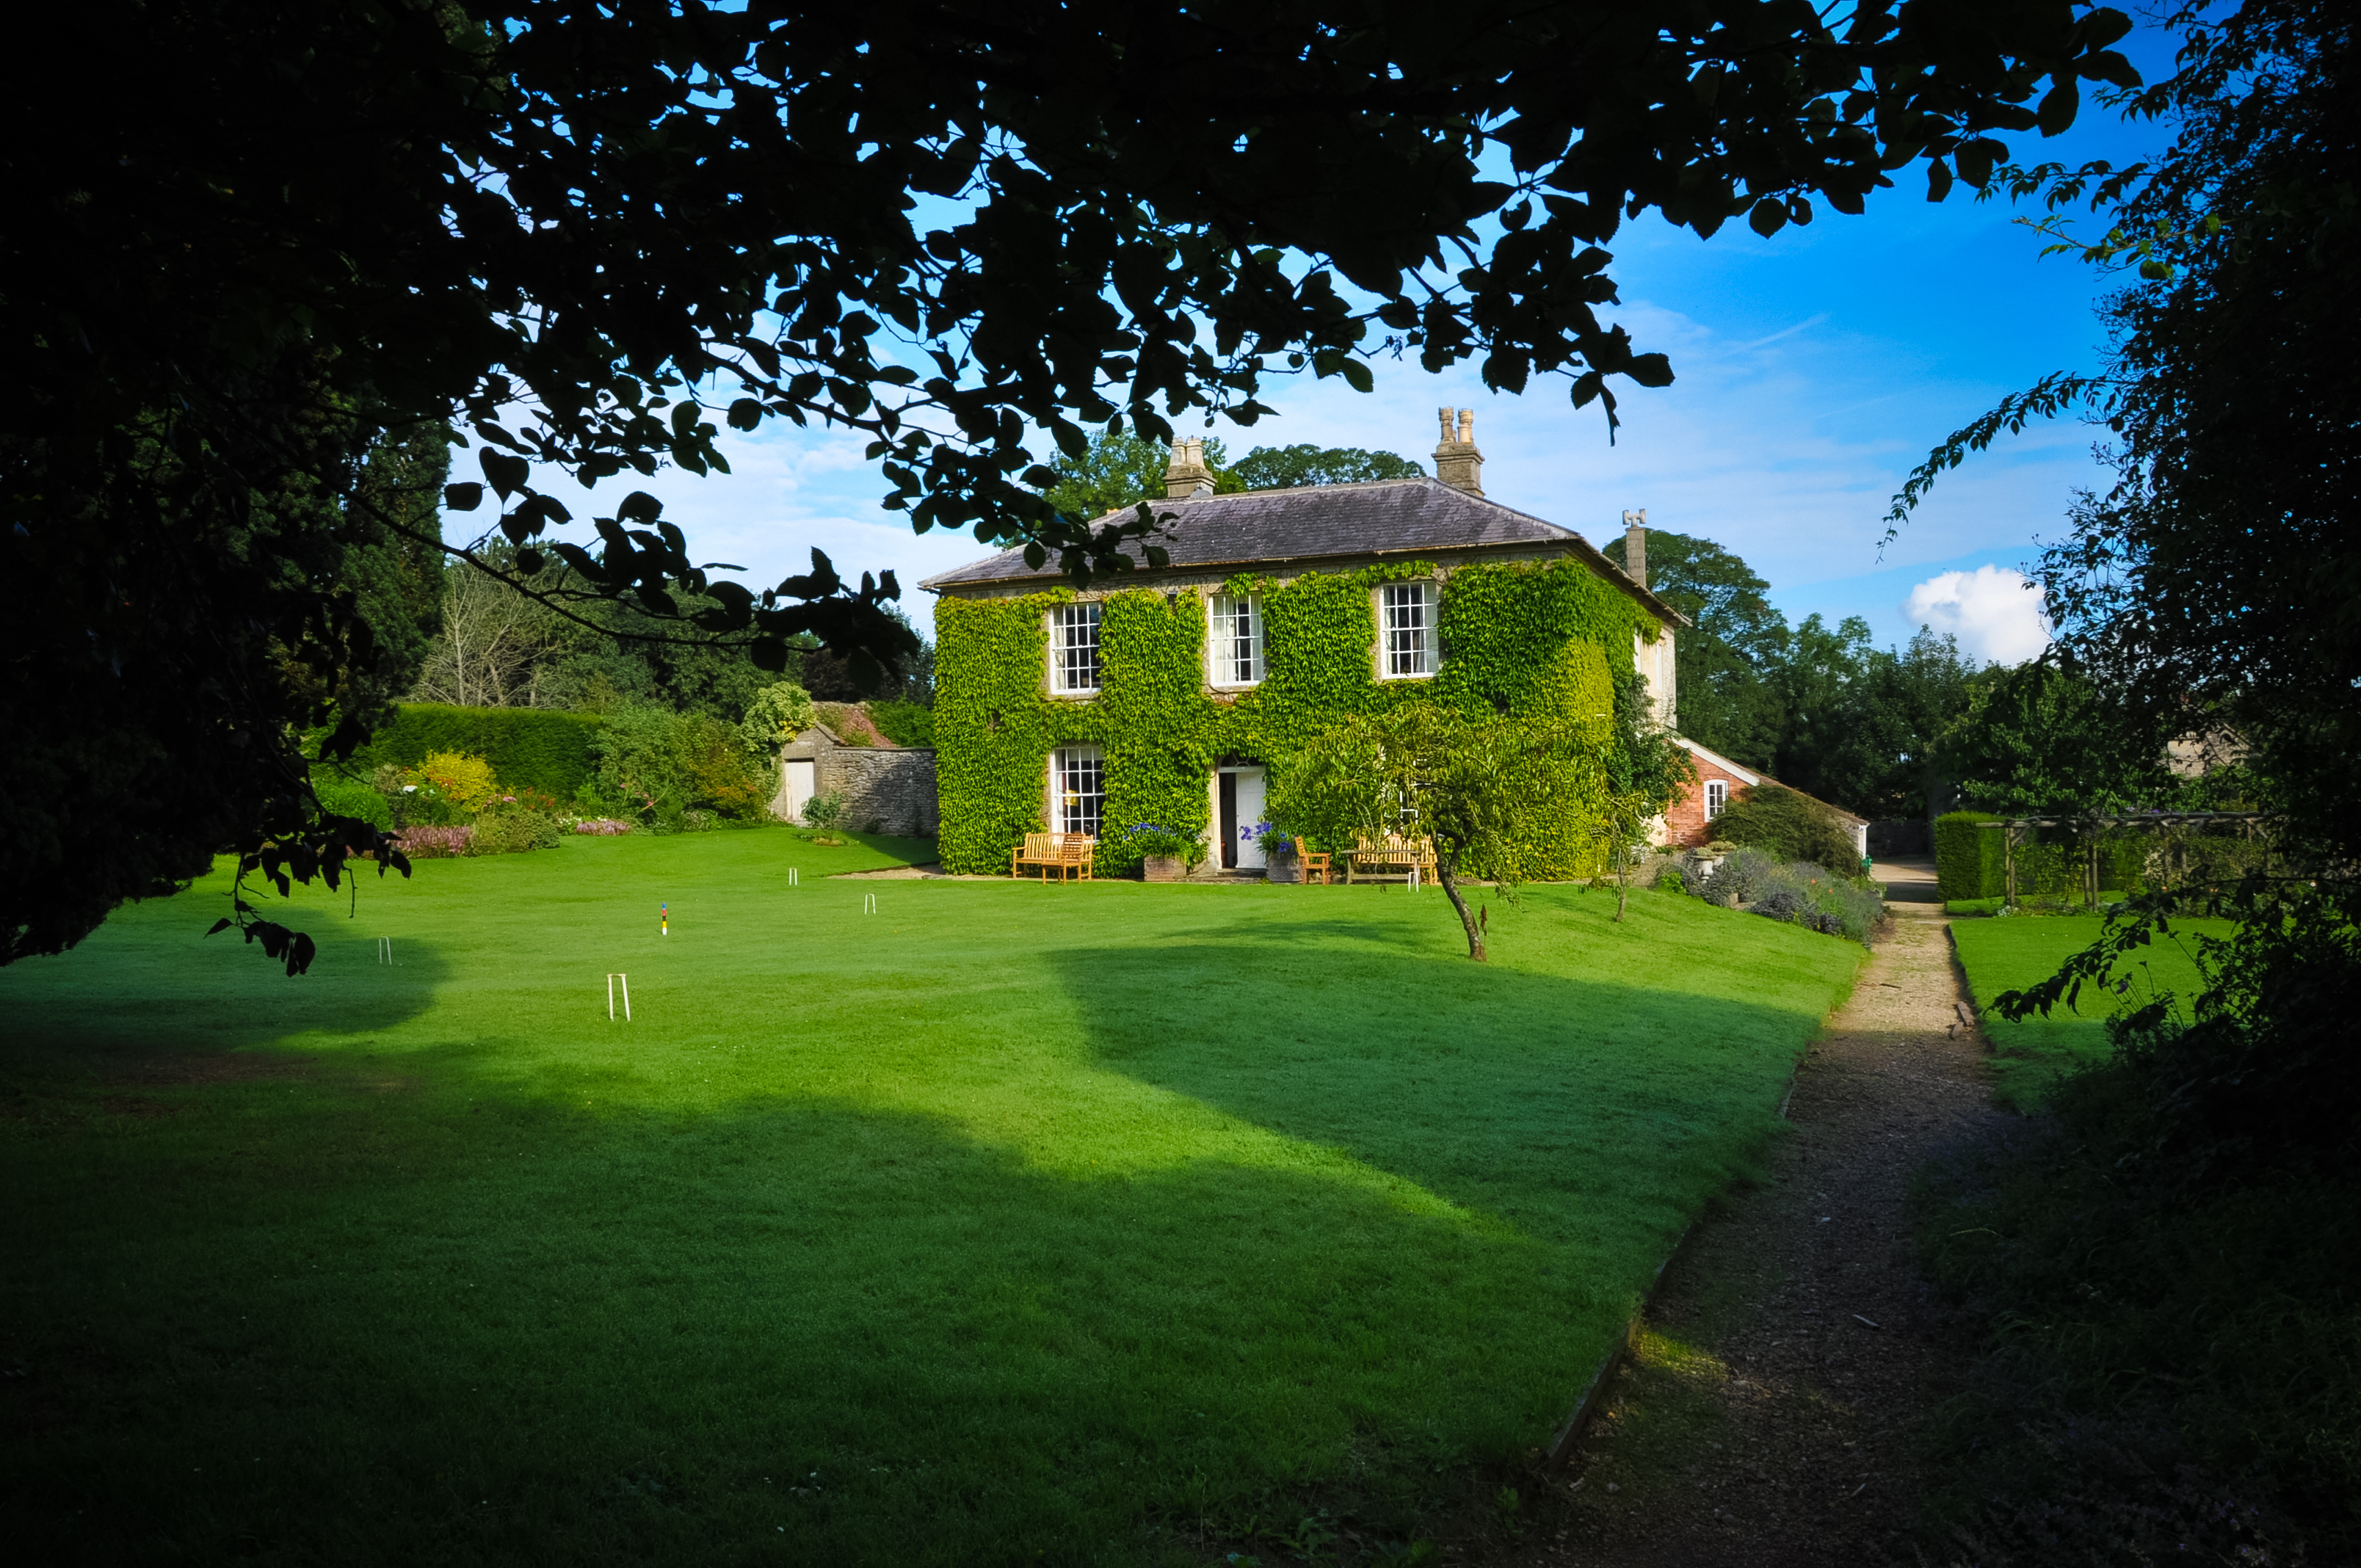 Dudwell Cookery School, Somerset: Learn how to cook in luxury surroundings